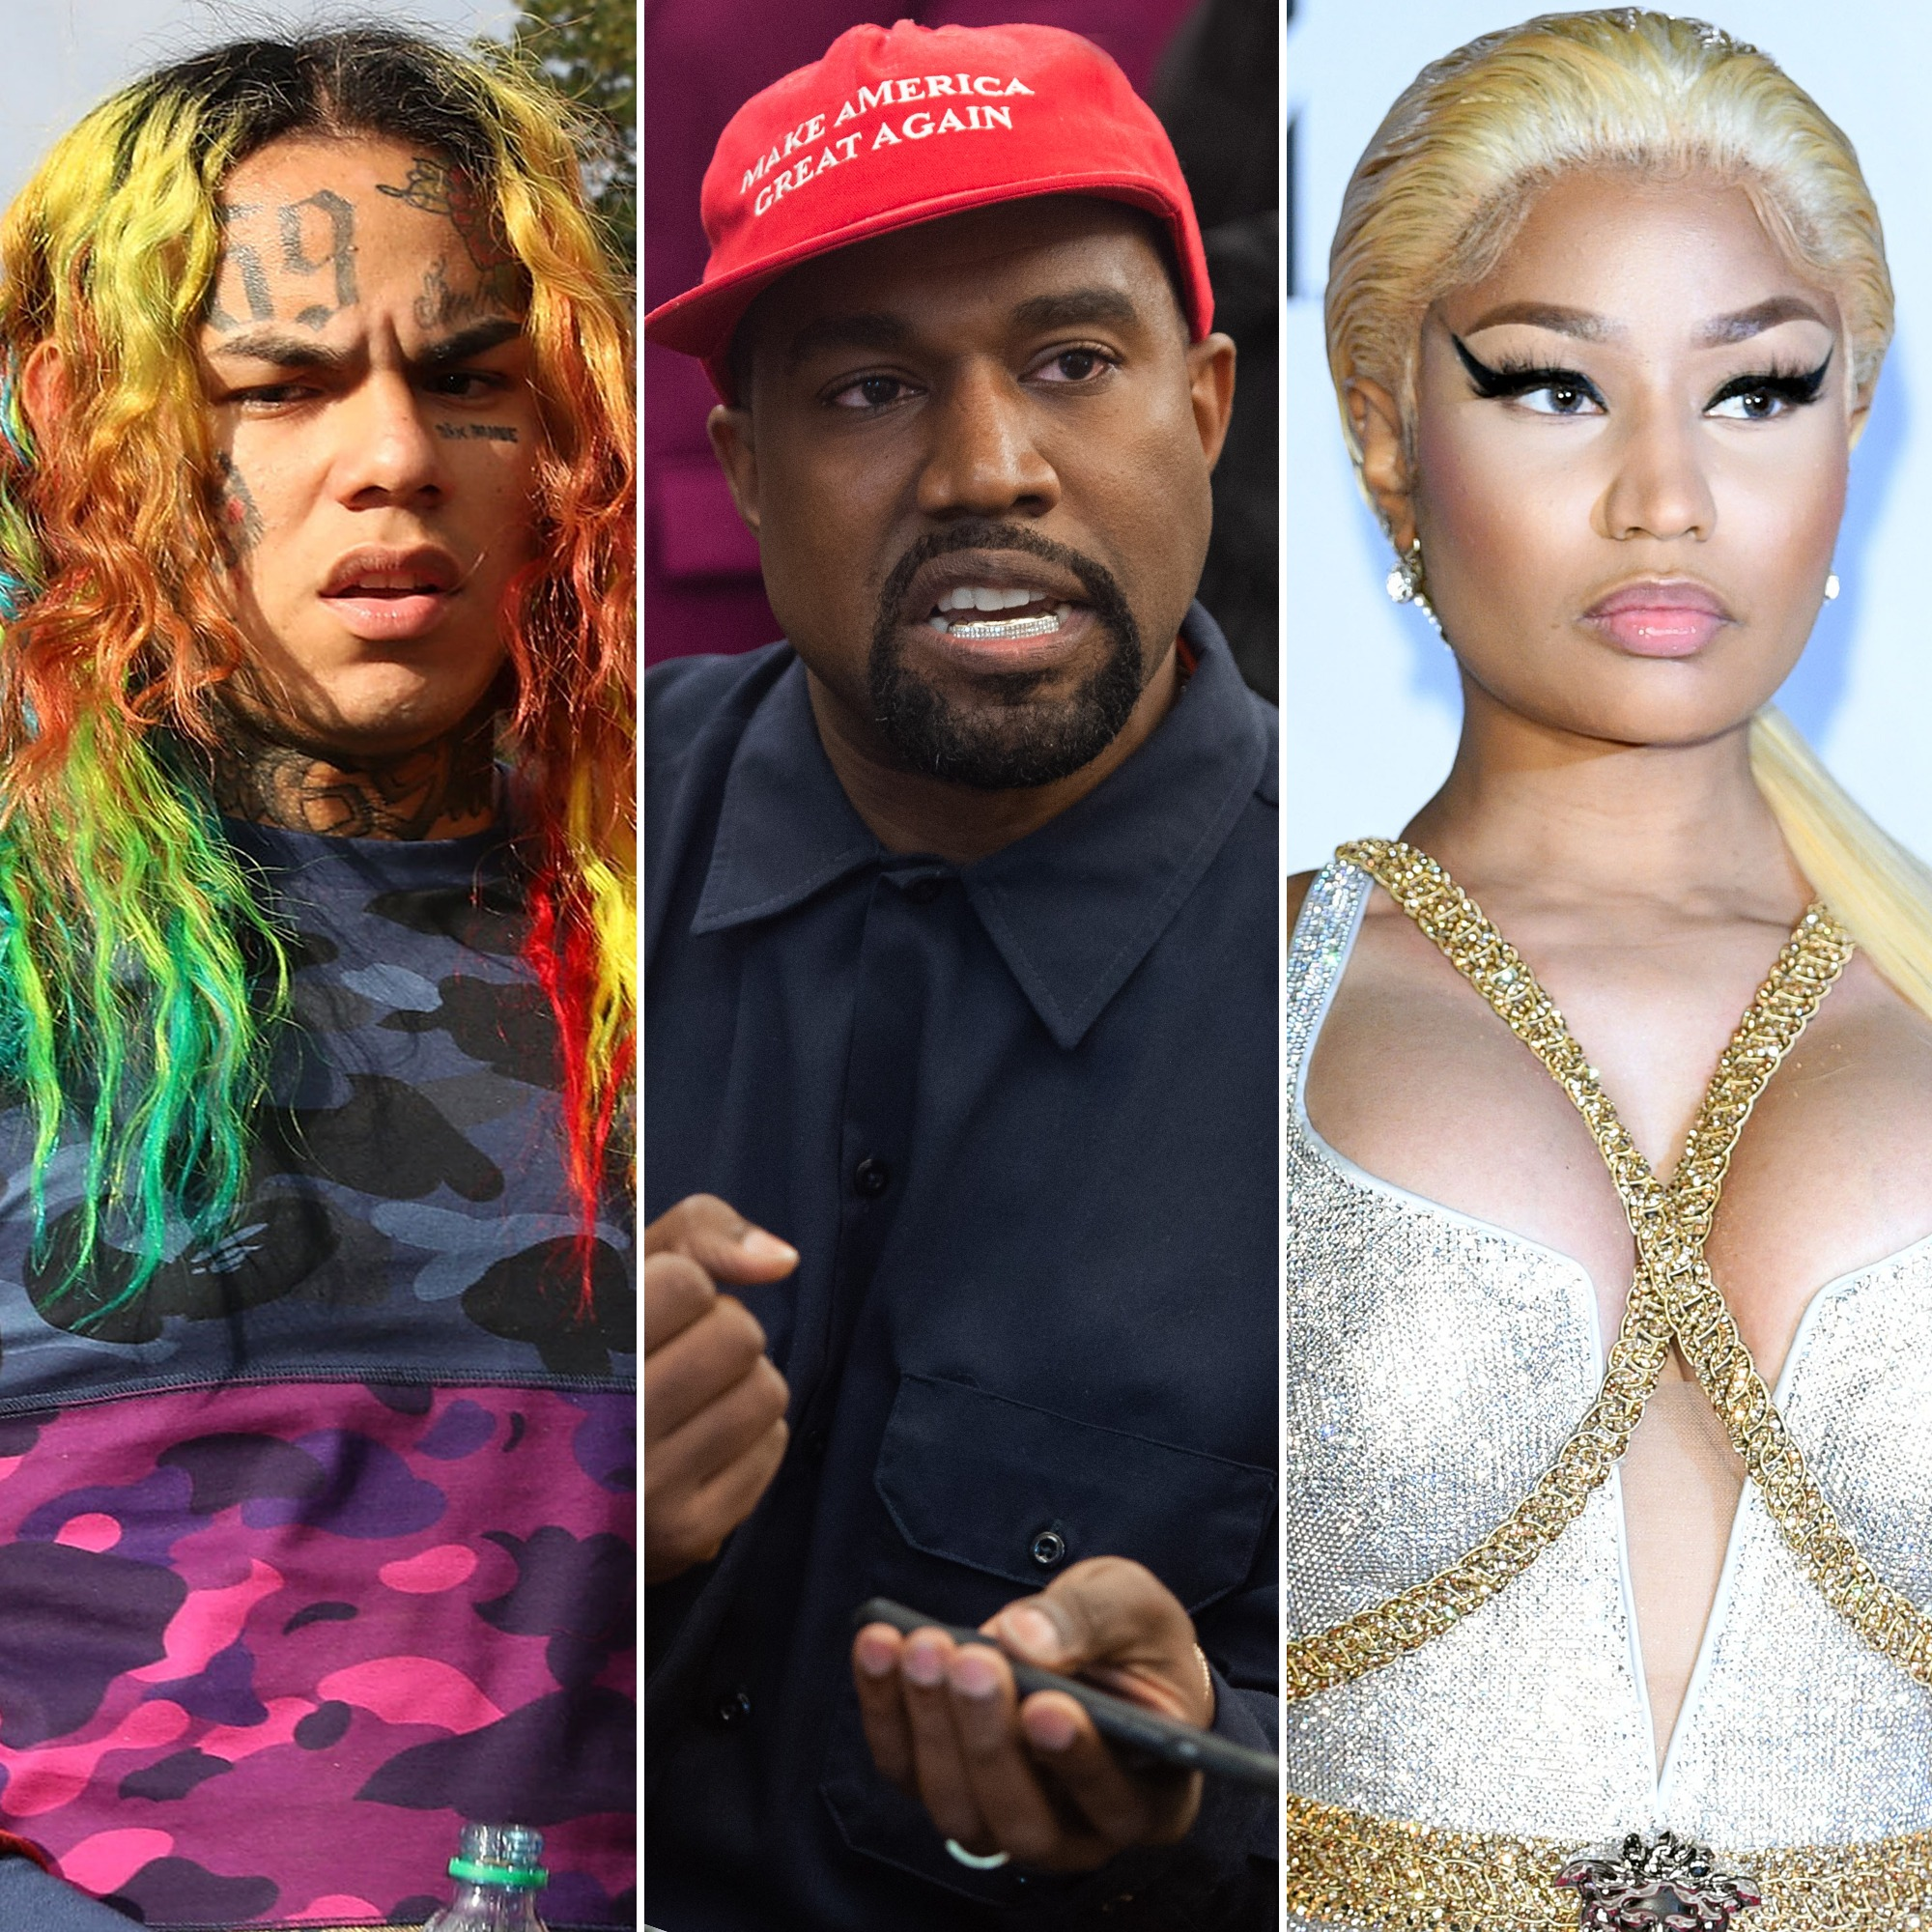 Photo of Attentato a colpi di pistola contro Tekashi 6ix9ine, Kanye West e Nicki Minaj